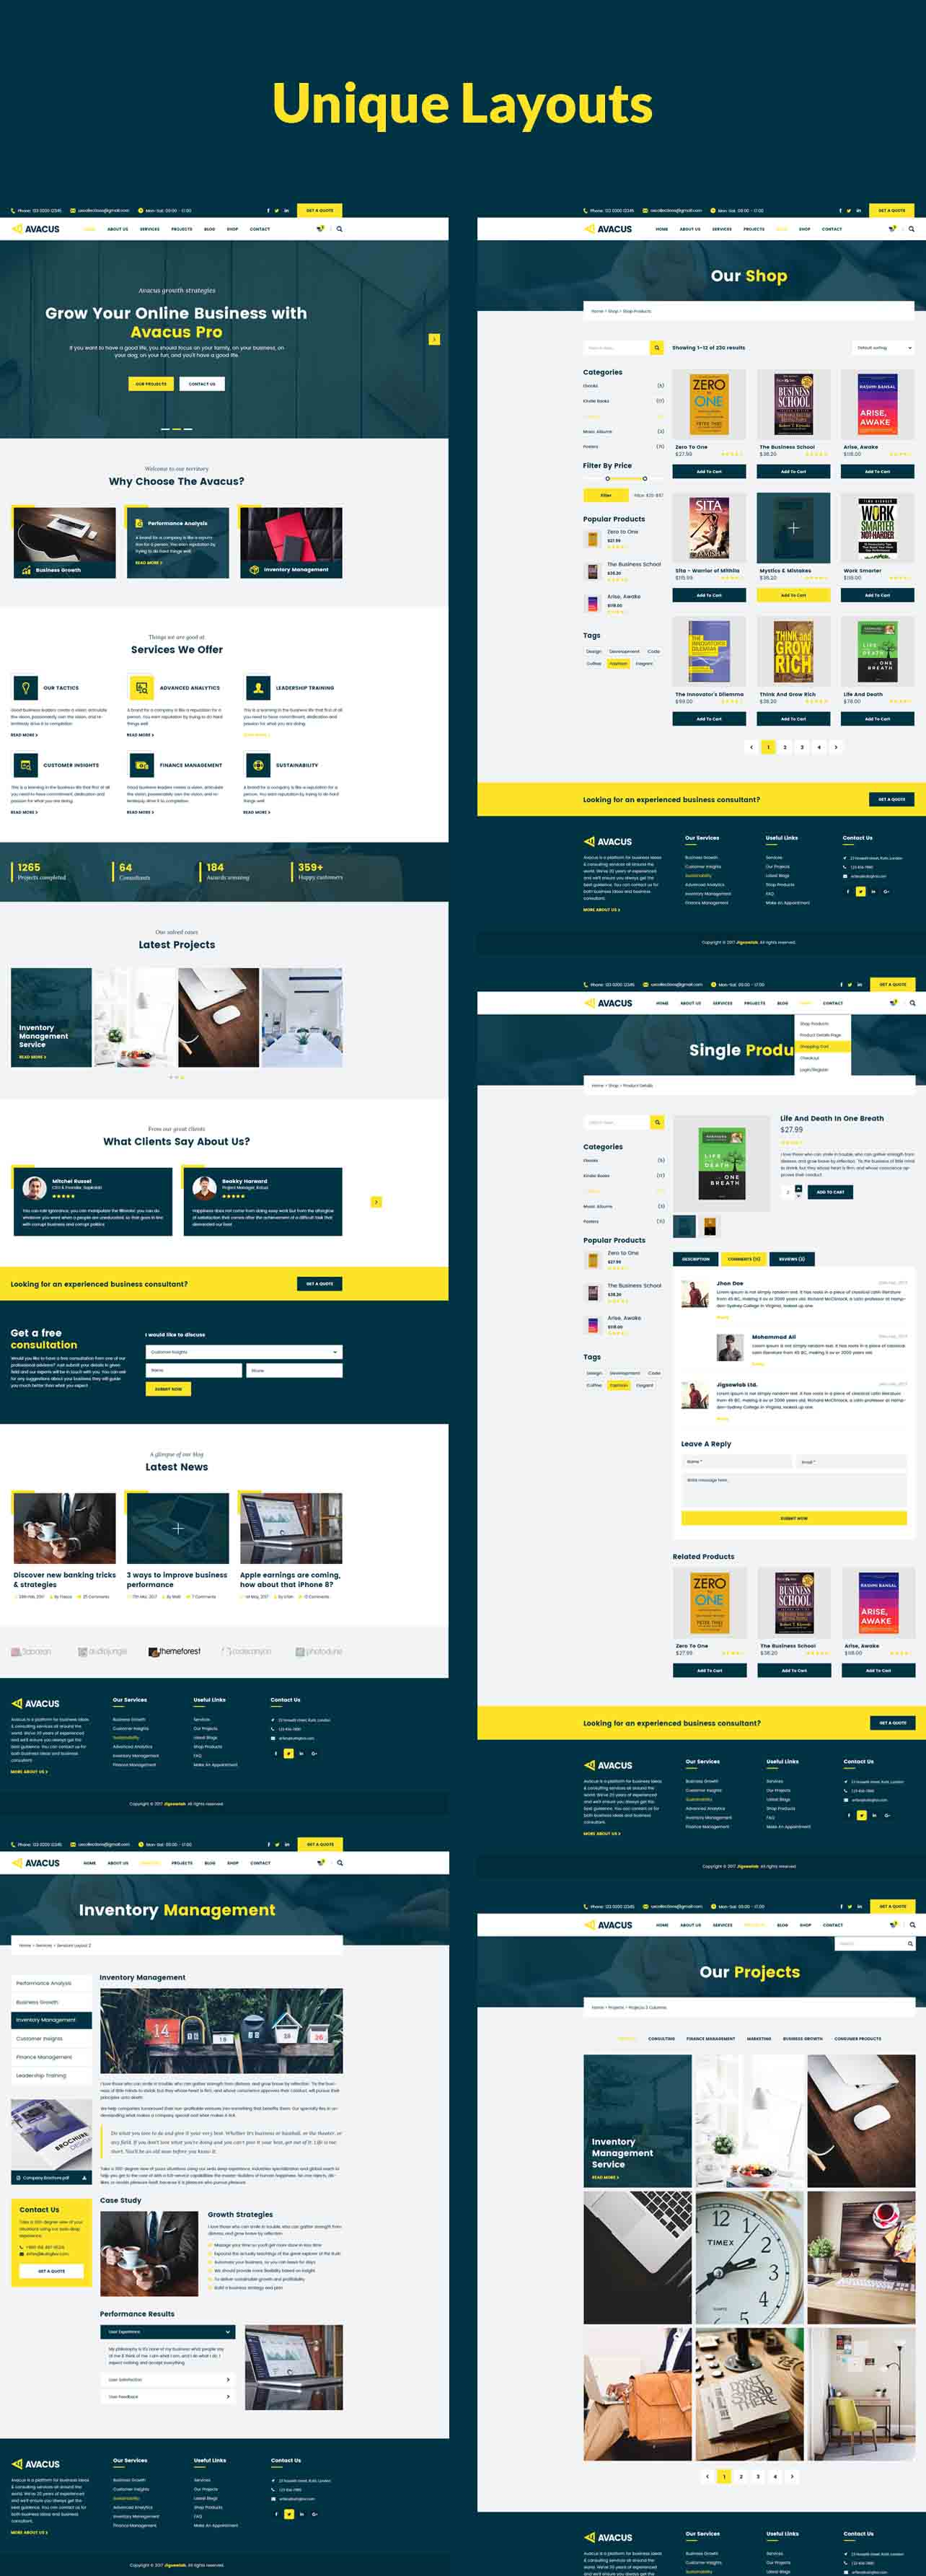 Avacus – Business Consulting and Agency Services HTML5 Template - 6